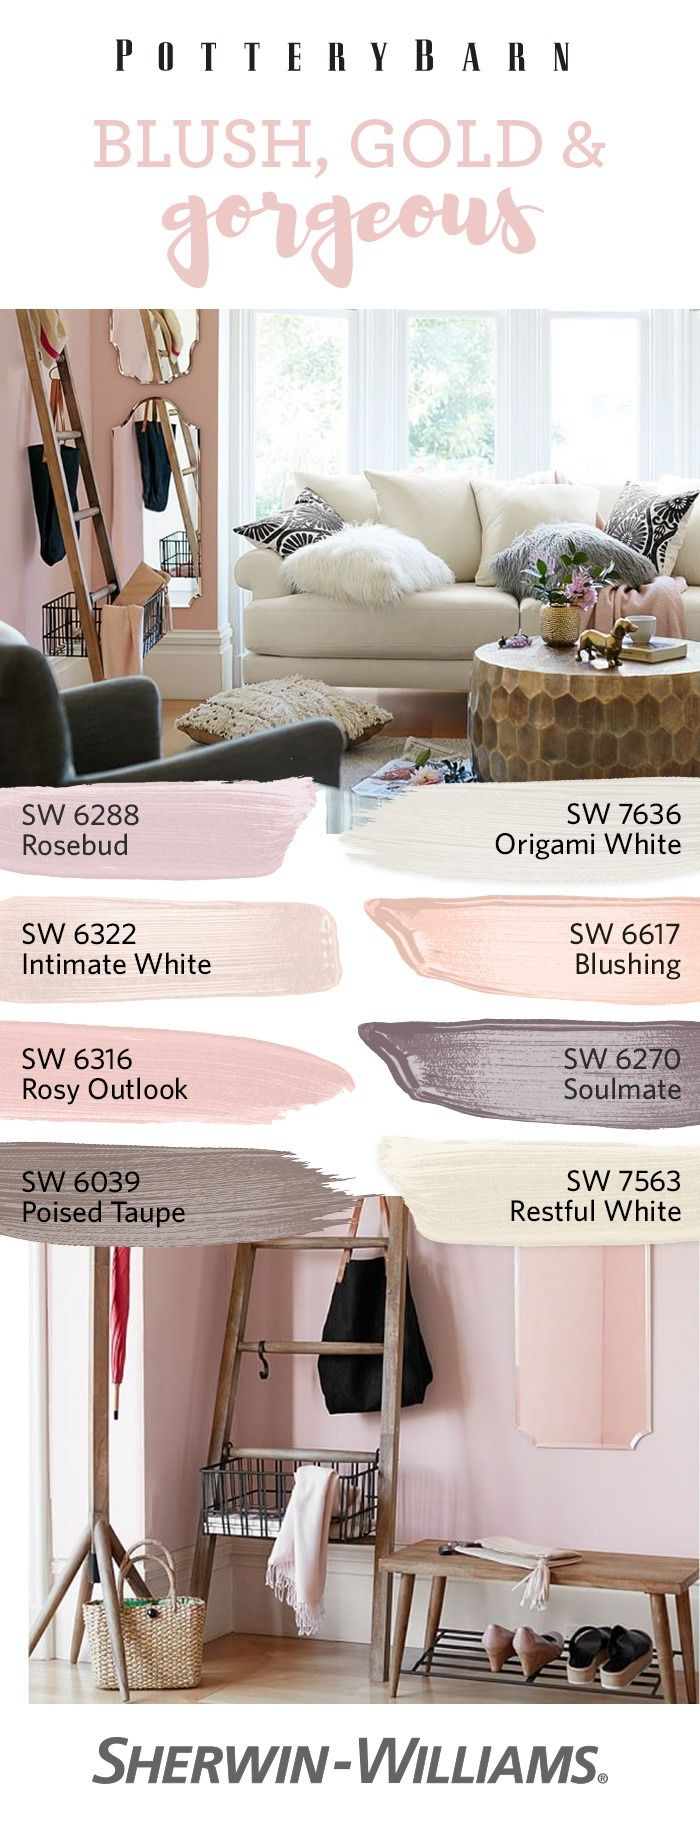 Rediscover the romance of any room, thanks to this rosy palette inspired by @PotteryBarn. Featuring blush tones and warm neutrals, including the Sherwin-Williams Color of the Year, Poised Taupe SW 6039, these hues combine perfectly with gold decor for a look that says love at first sight.